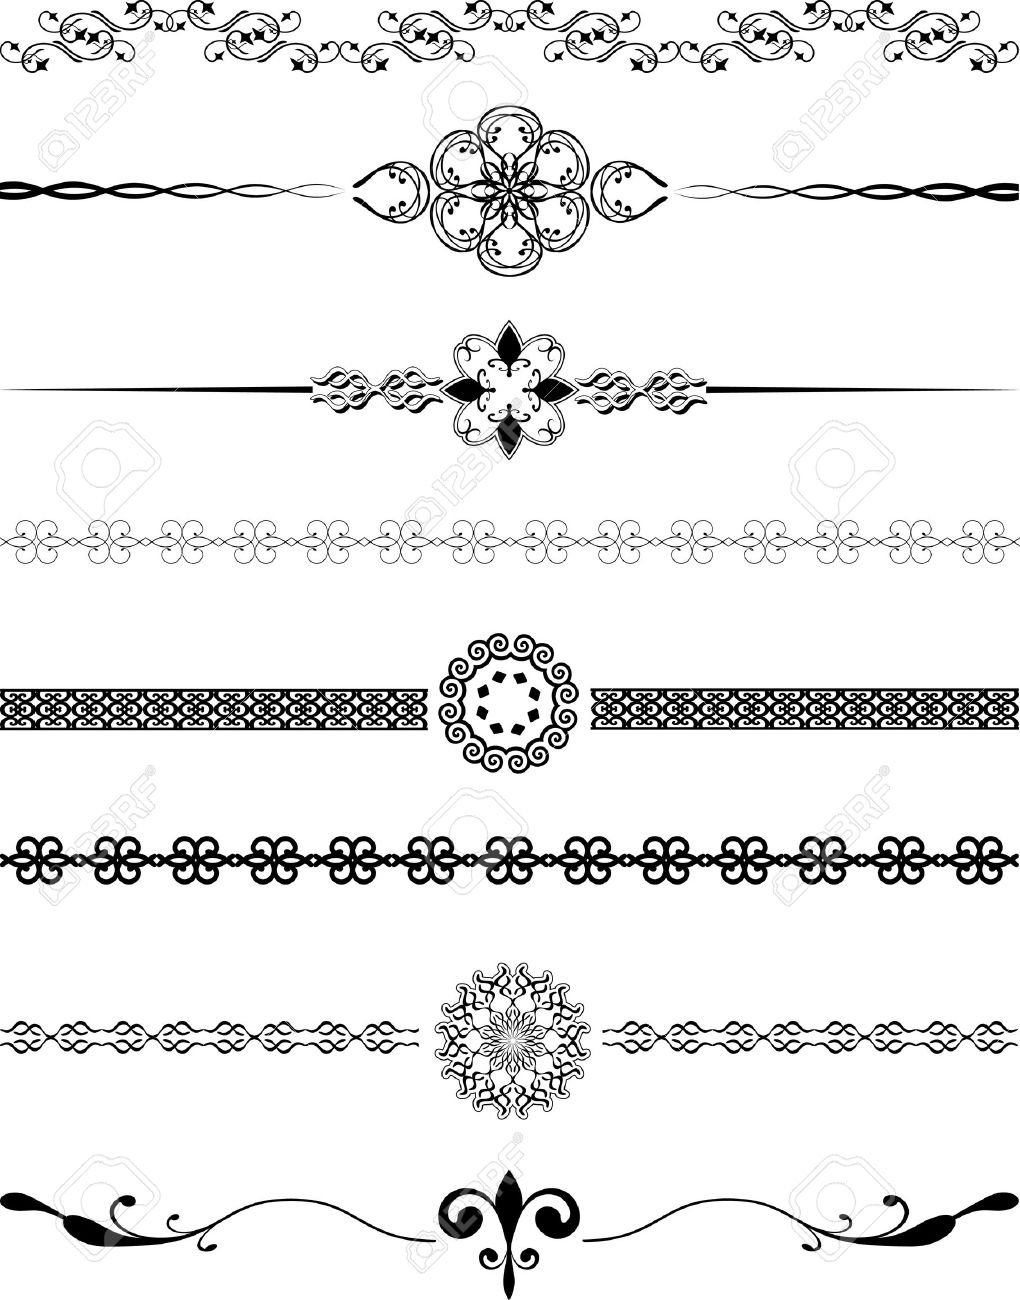 Various different designs of decorative borders Stock Vector - 6281674